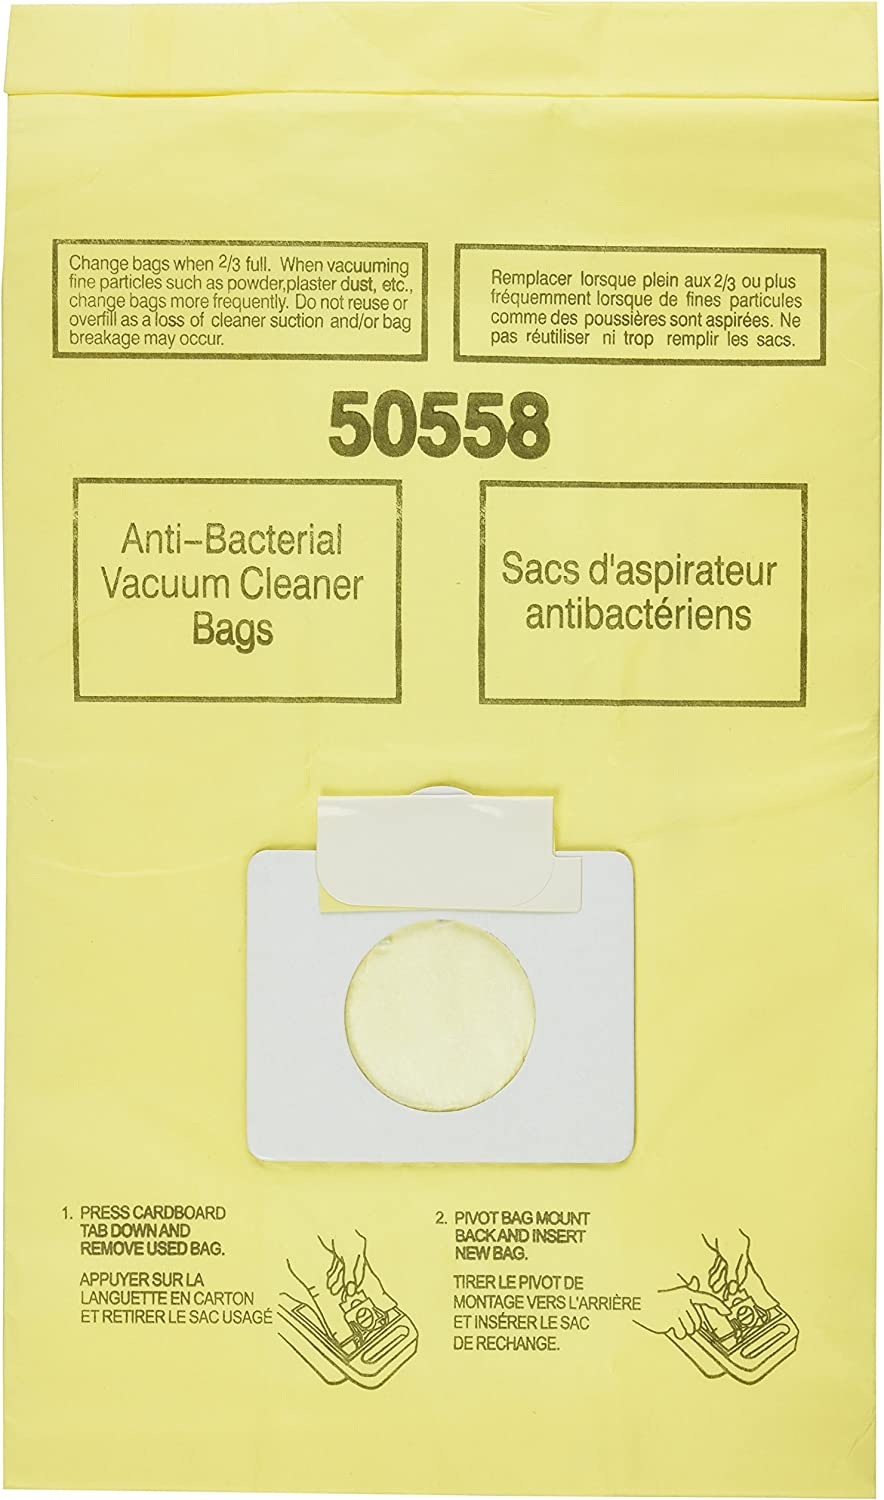 1 X Generic Kenmore Canister Vacuum Cleaner Bags 3 Pack. Style 5055. 50557. and 50558, Also Will Fit Panasonic Style C-5